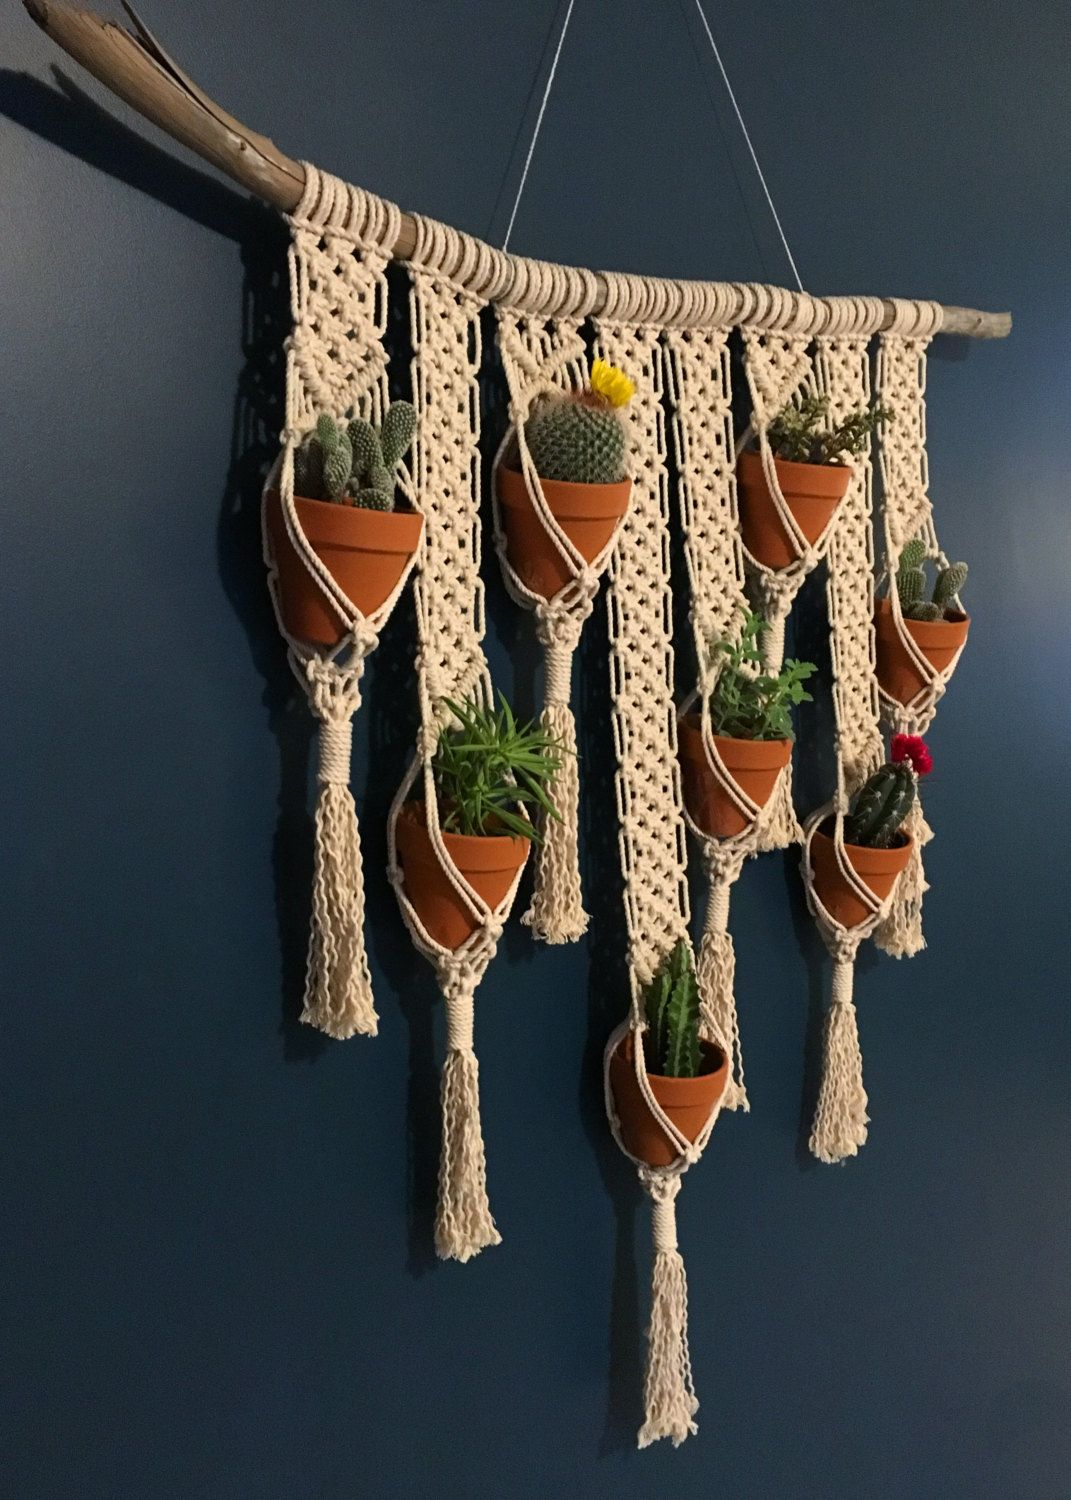 Large macrame wall plant hanger on natural driftwood cotton rope